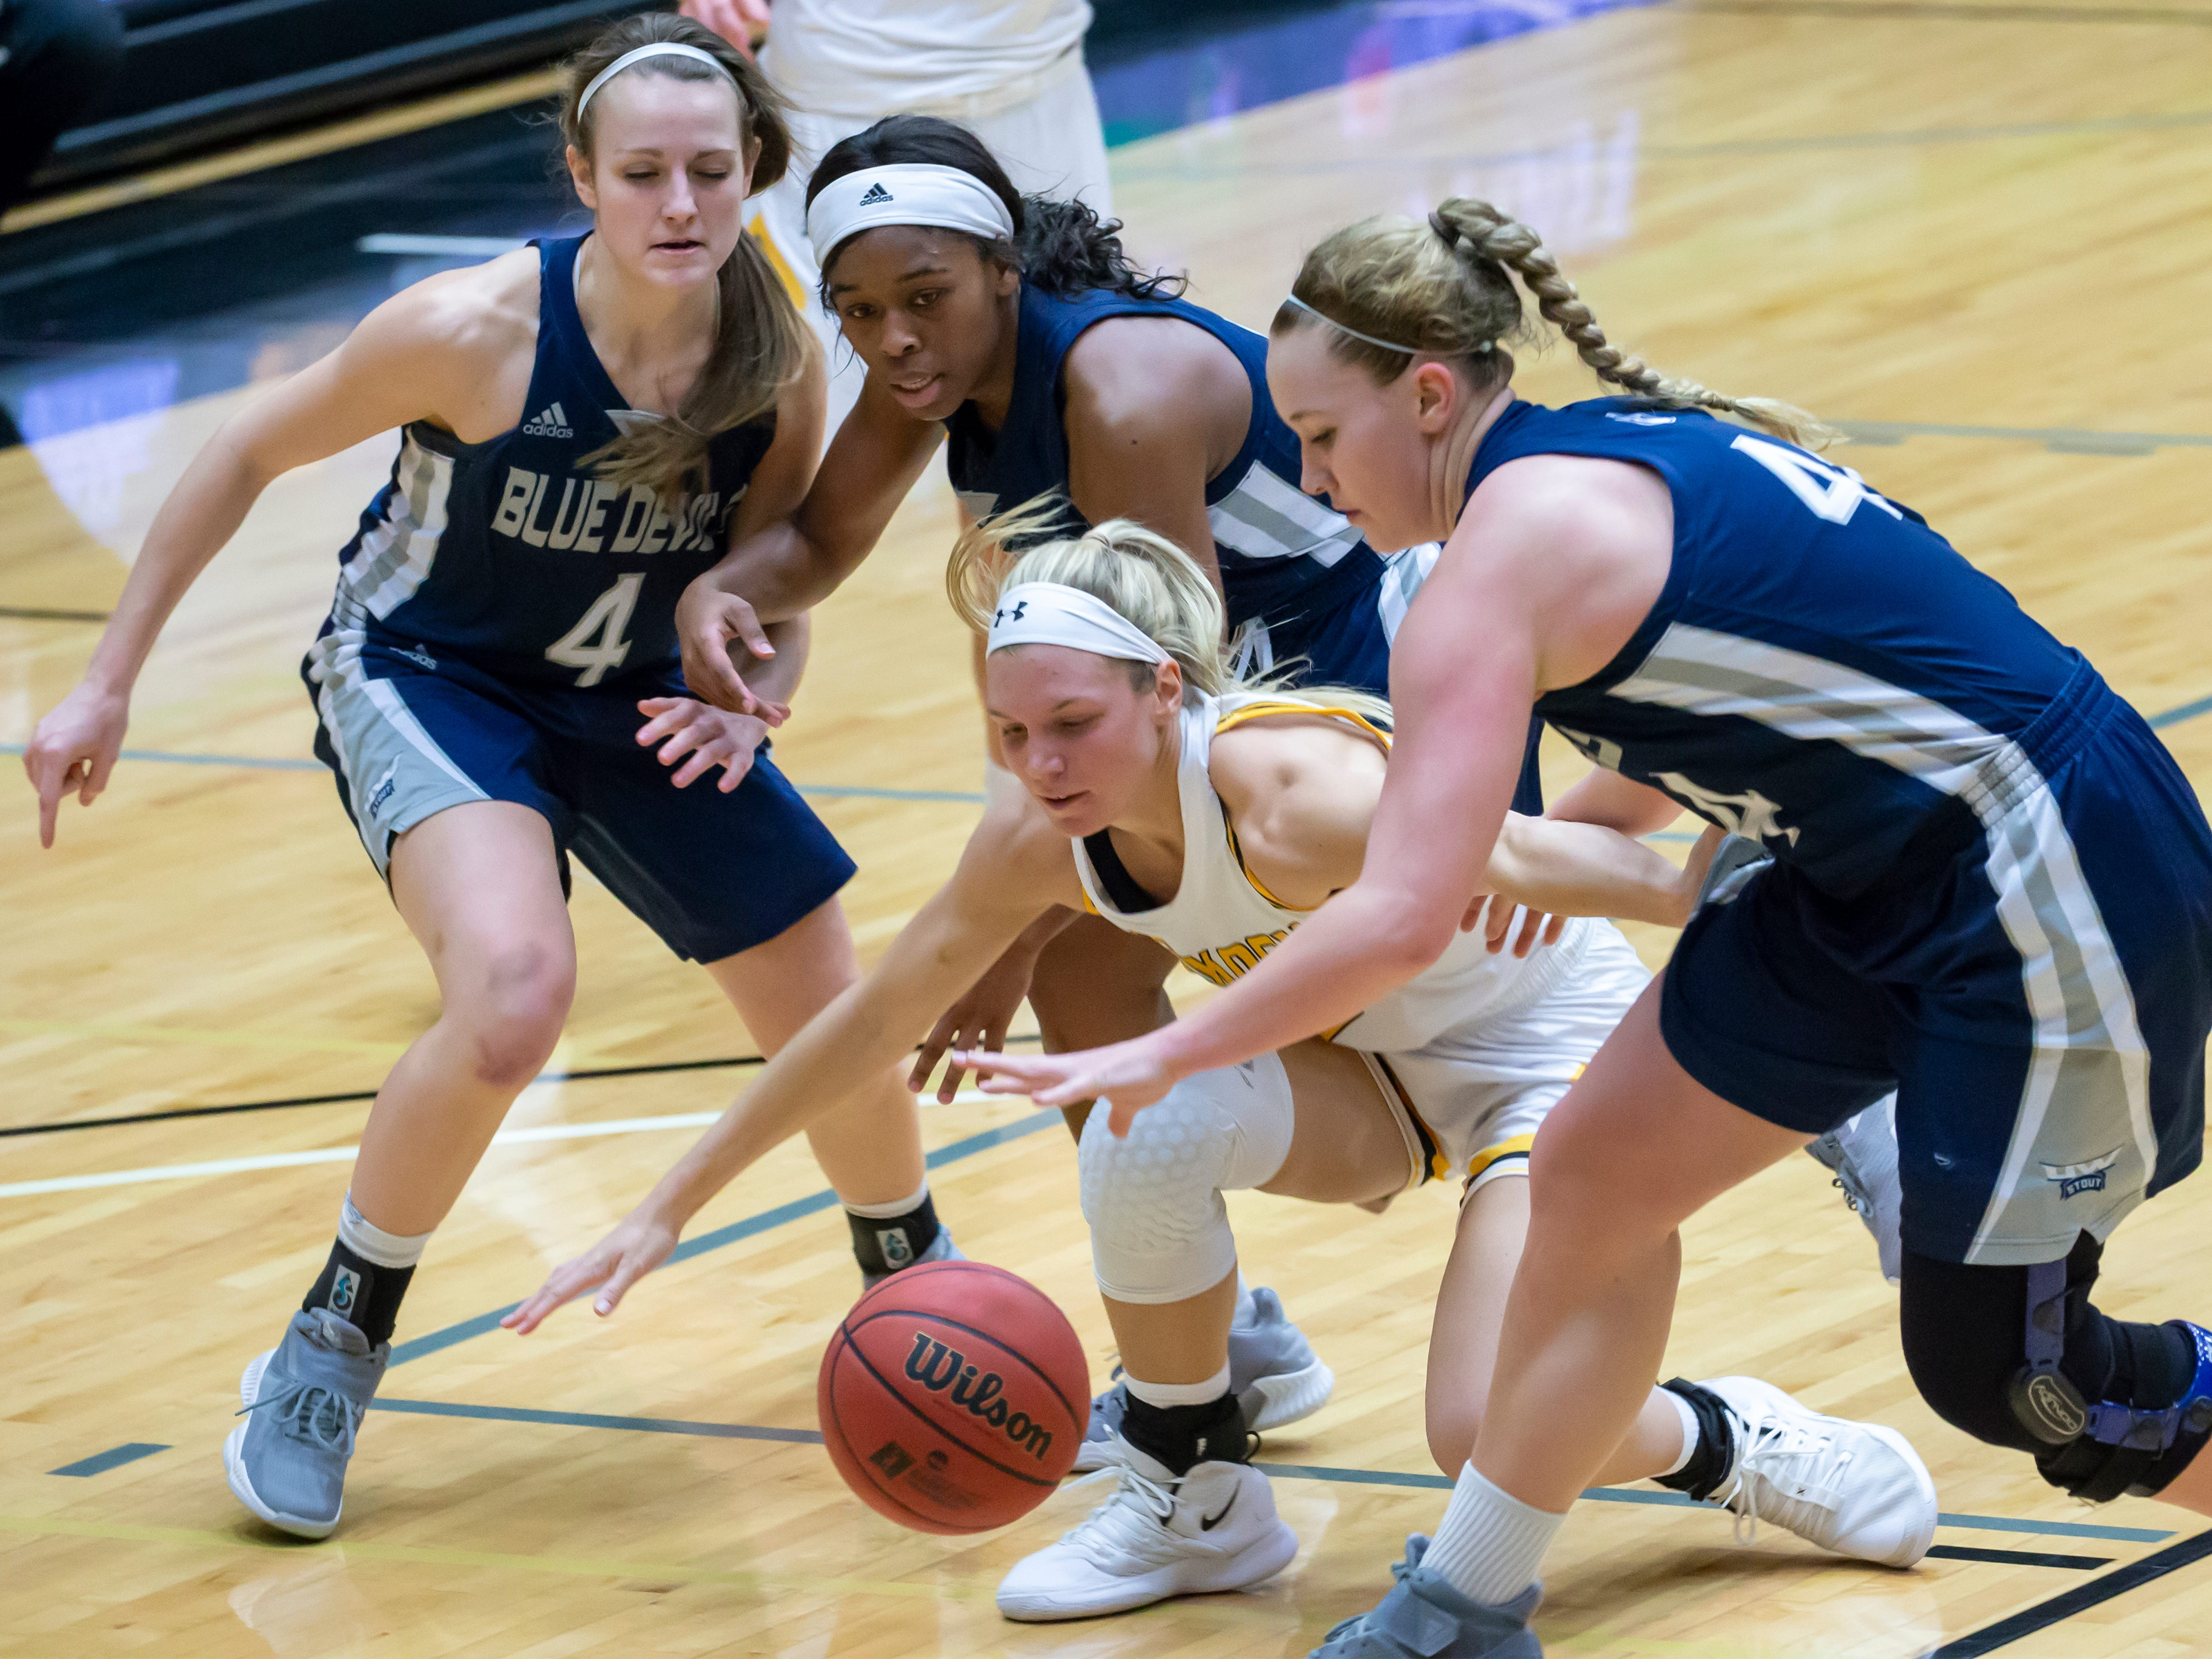 UW-Oshkosh's Melanie Schneider and UW-Stout players go after the loose ball at the Kolf Sports Center on Saturday, January 5, 2019.